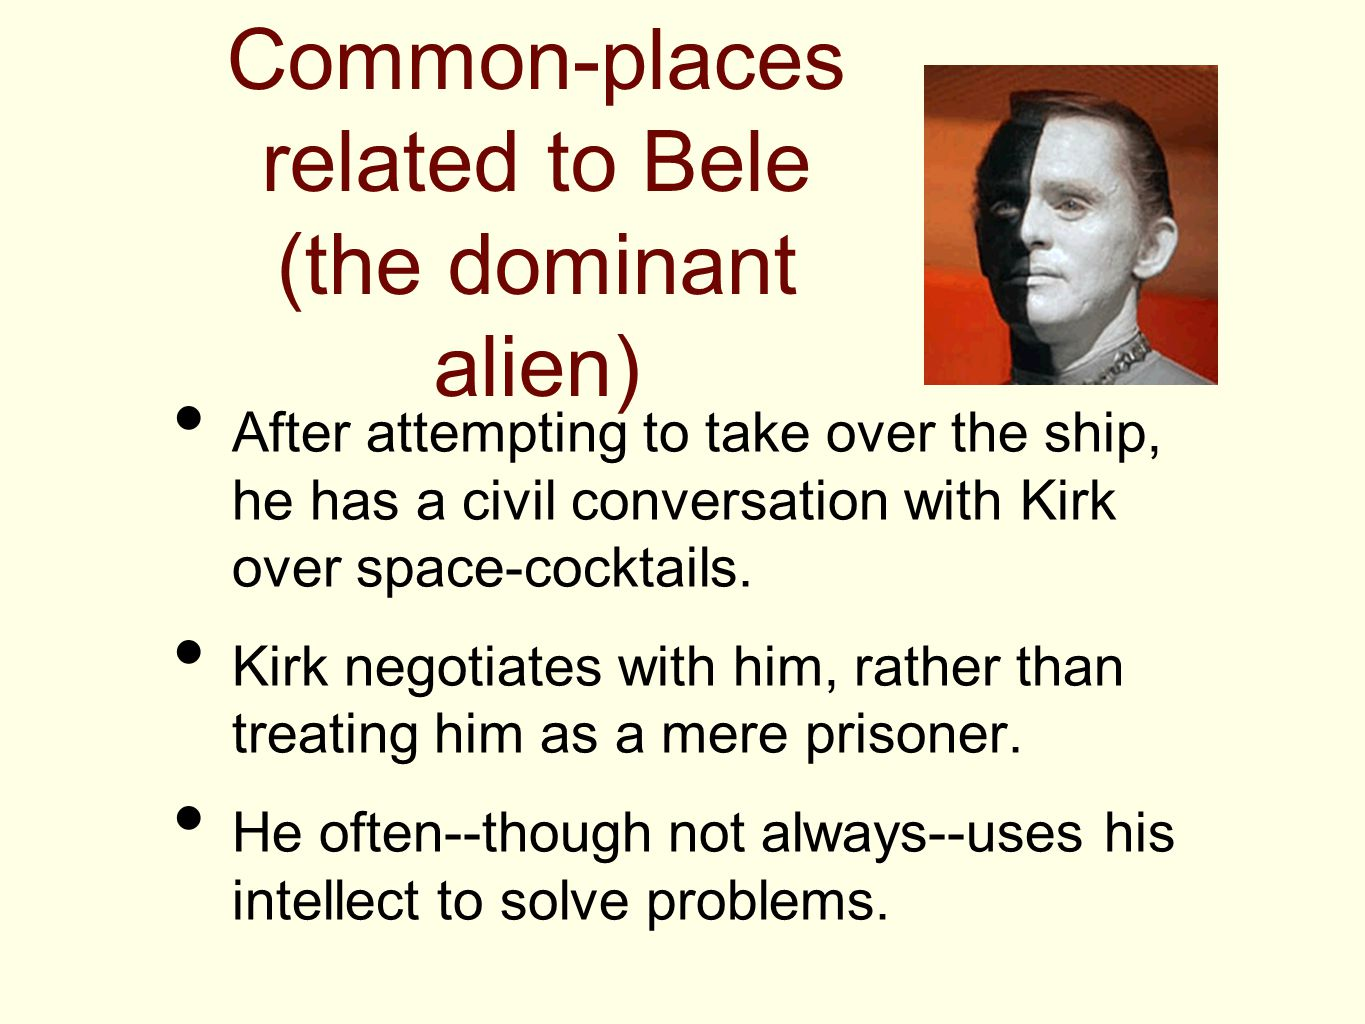 Common-places related to Bele (the dominant alien) After attempting to take over the ship, he has a civil conversation with Kirk over space-cocktails.